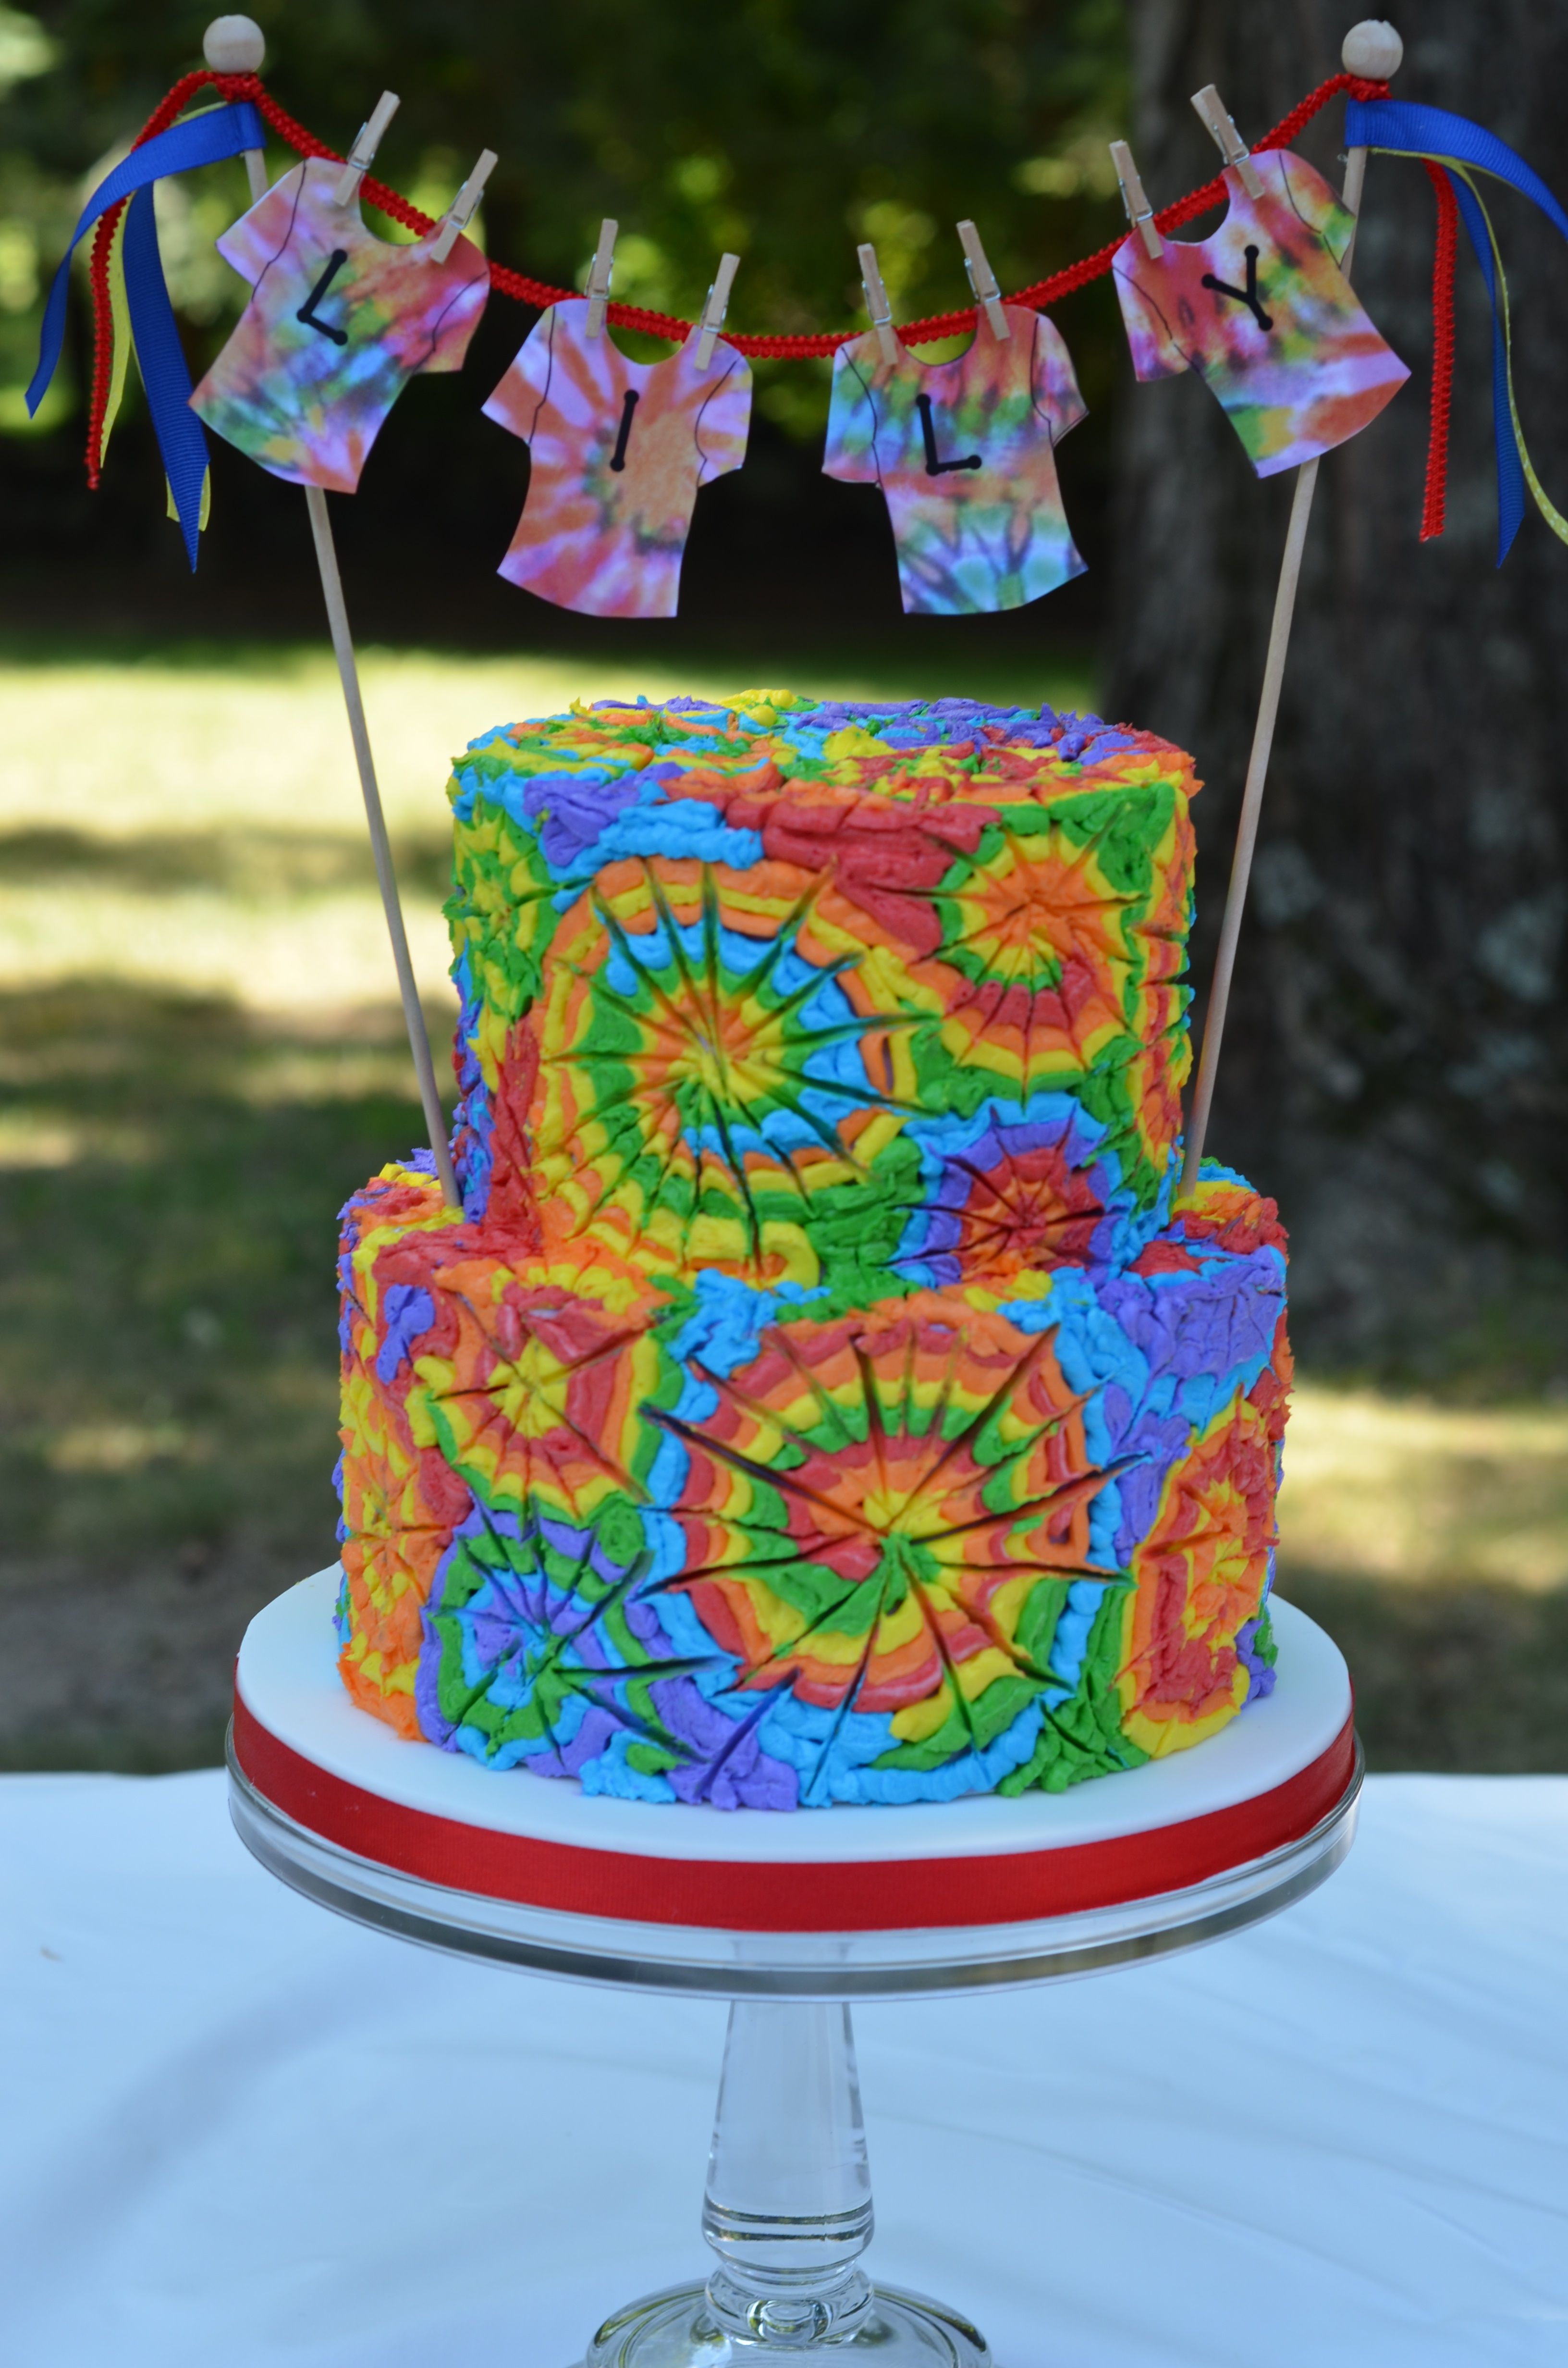 Cool Birthday Cakes I Made This Cake For A Tie Dye Birthday Party Funny Birthday Cards Online Unhofree Goldxyz